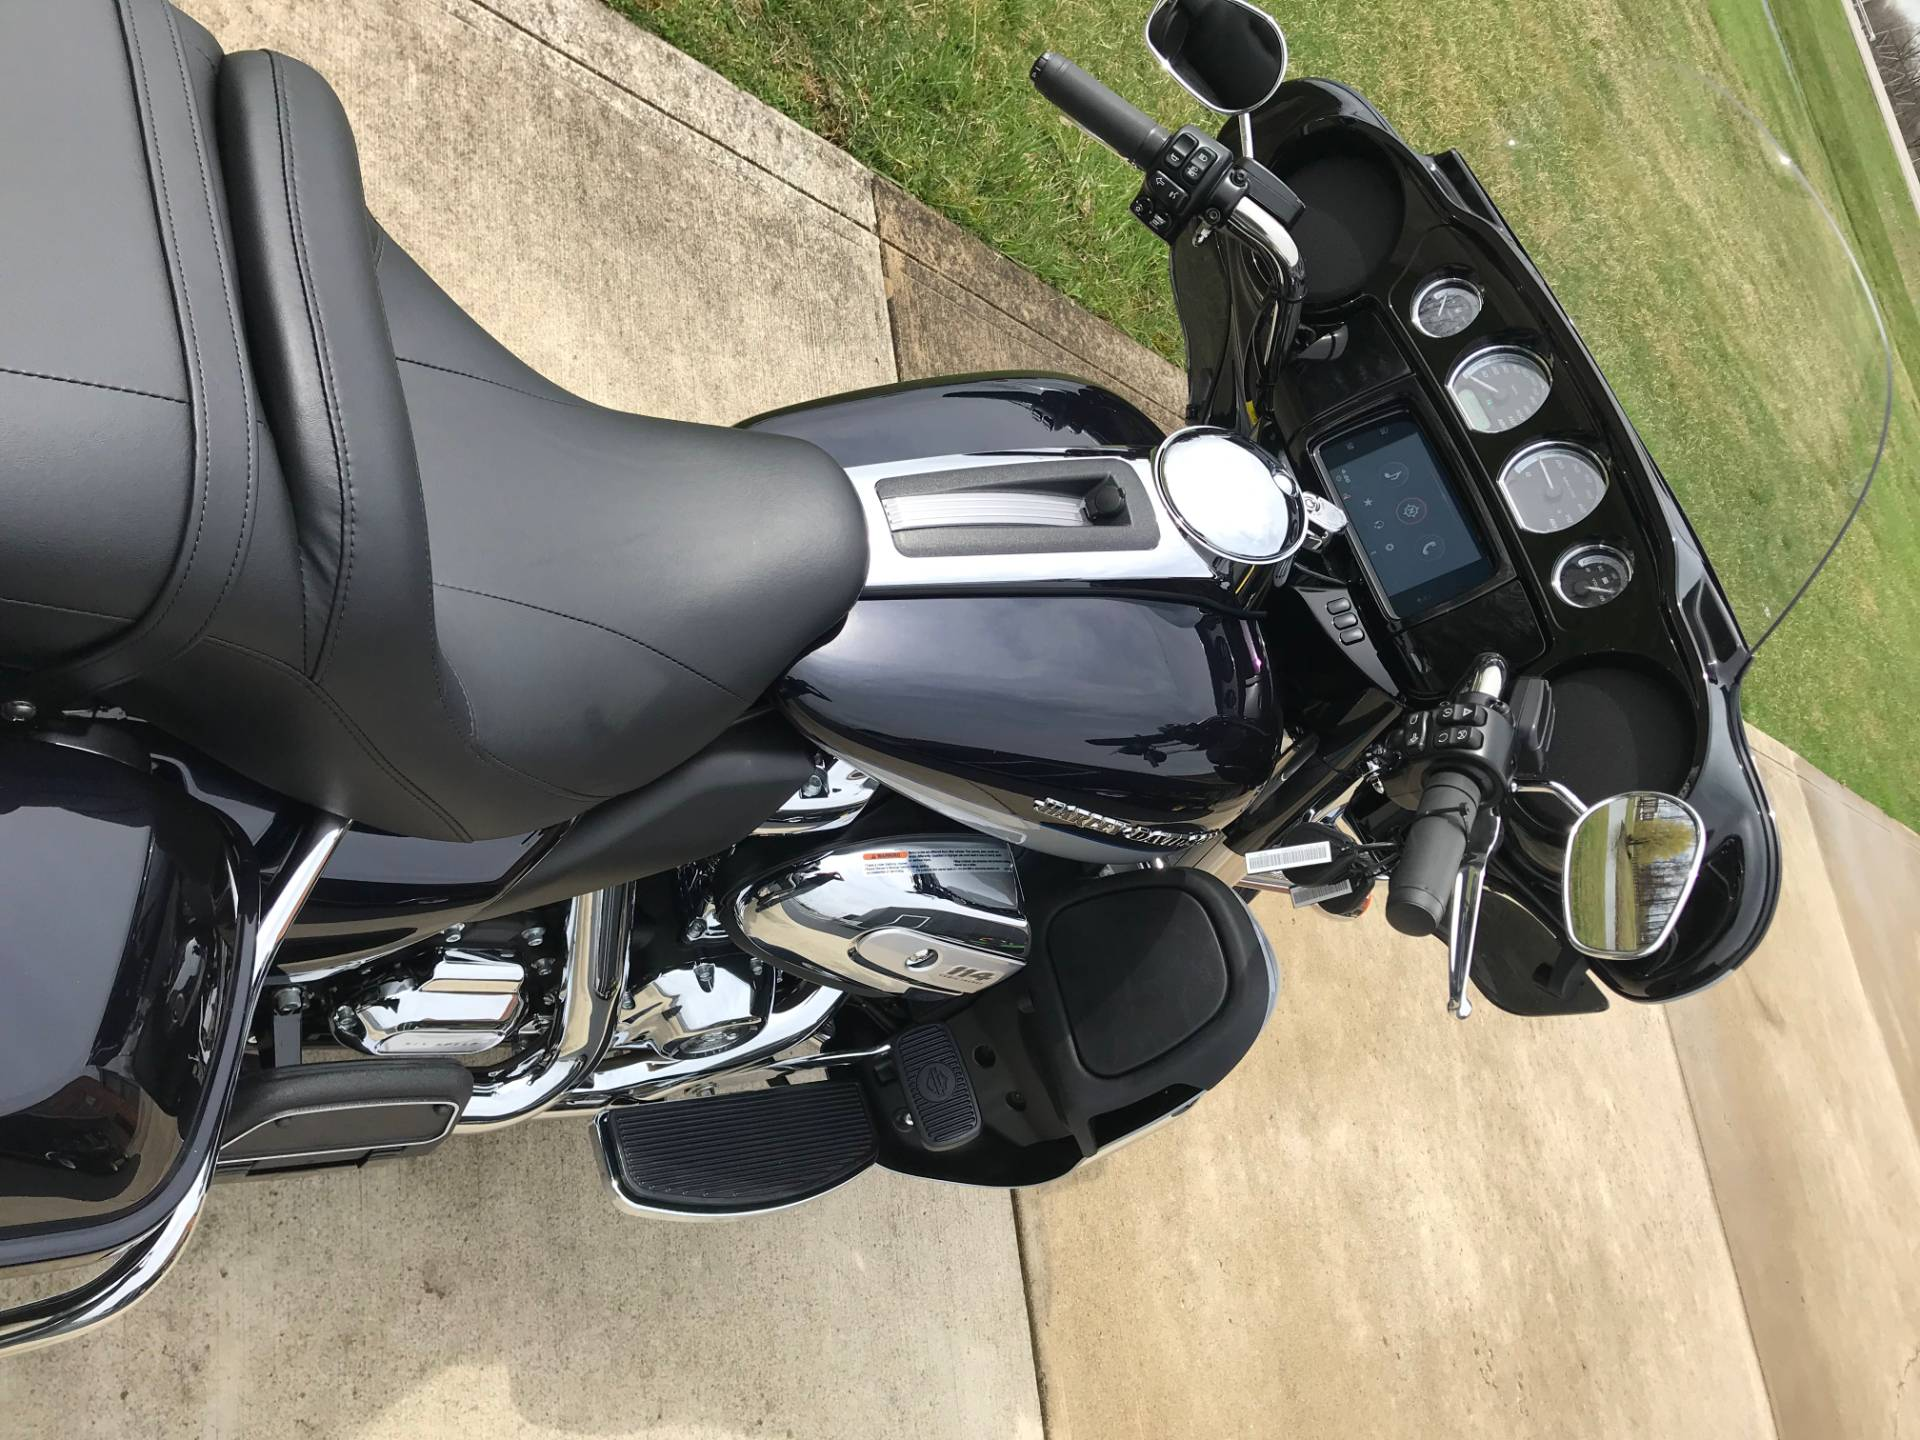 2019 Harley-Davidson Ultra Limited in Sunbury, Ohio - Photo 25